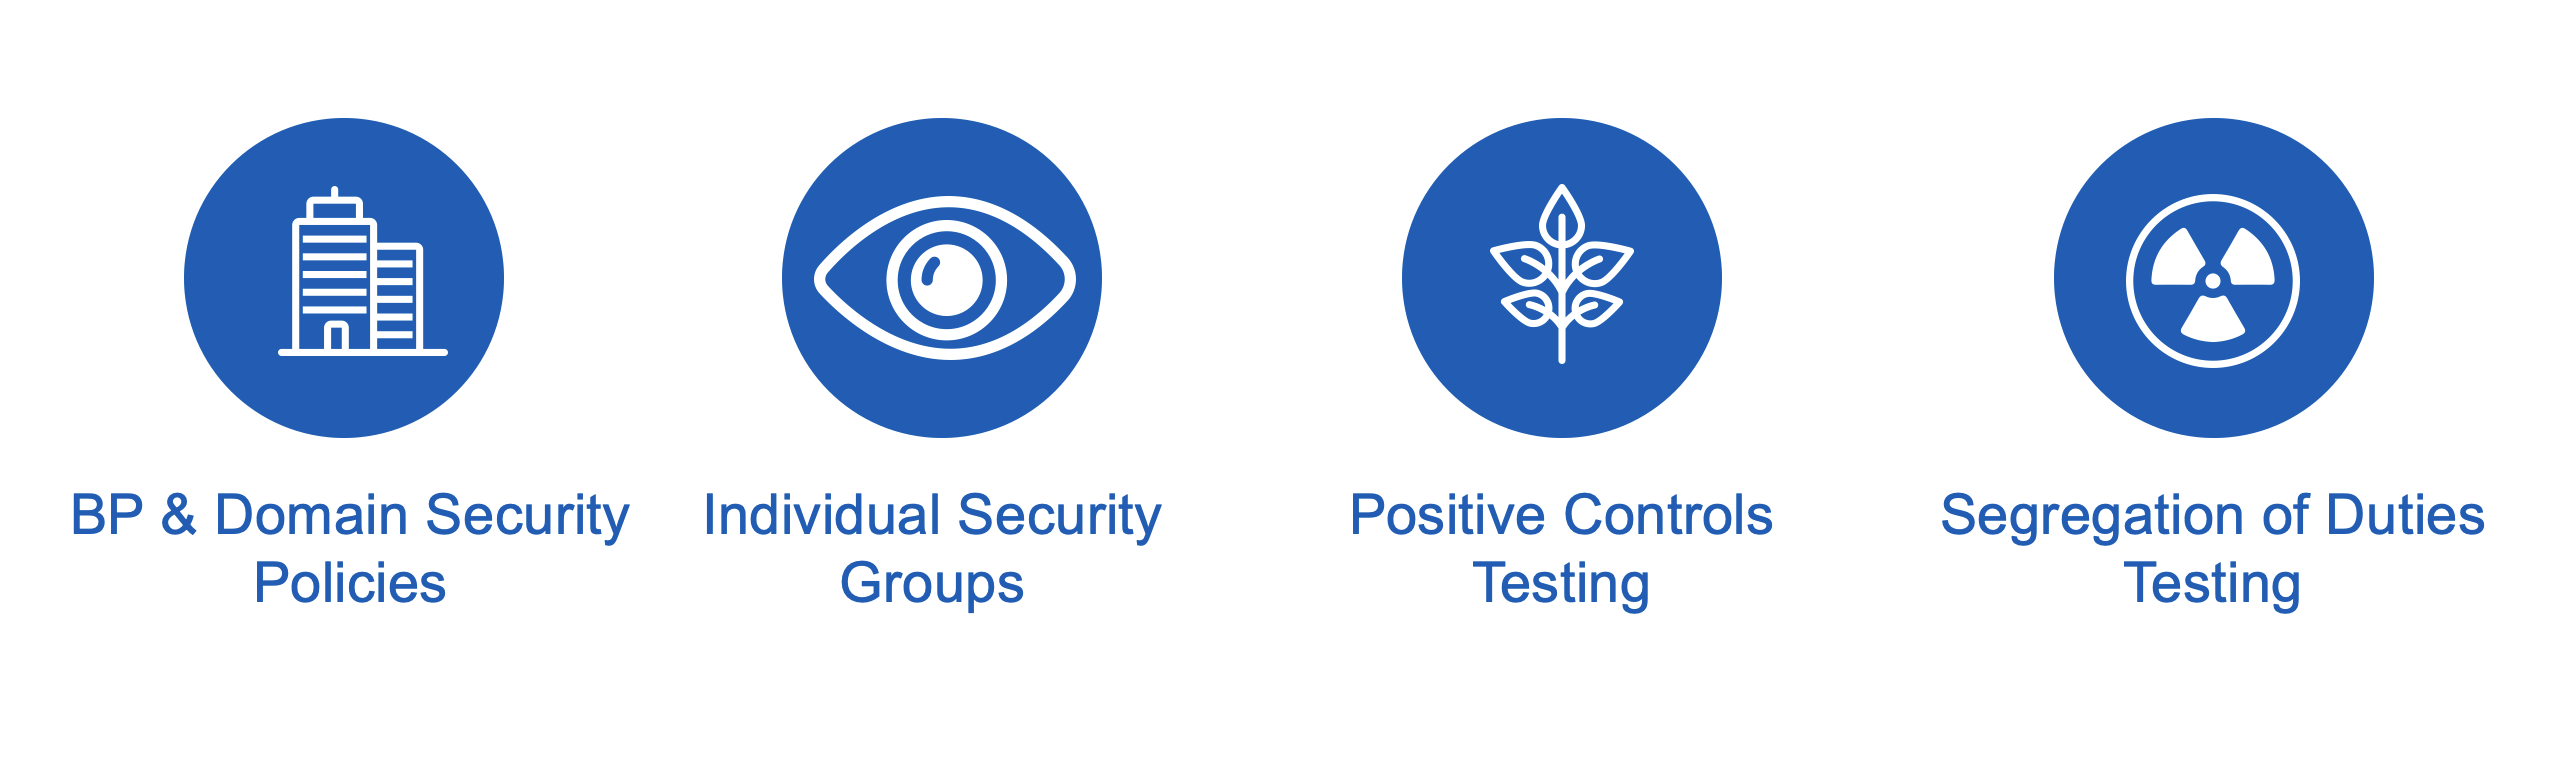 4 types of Workday security testing